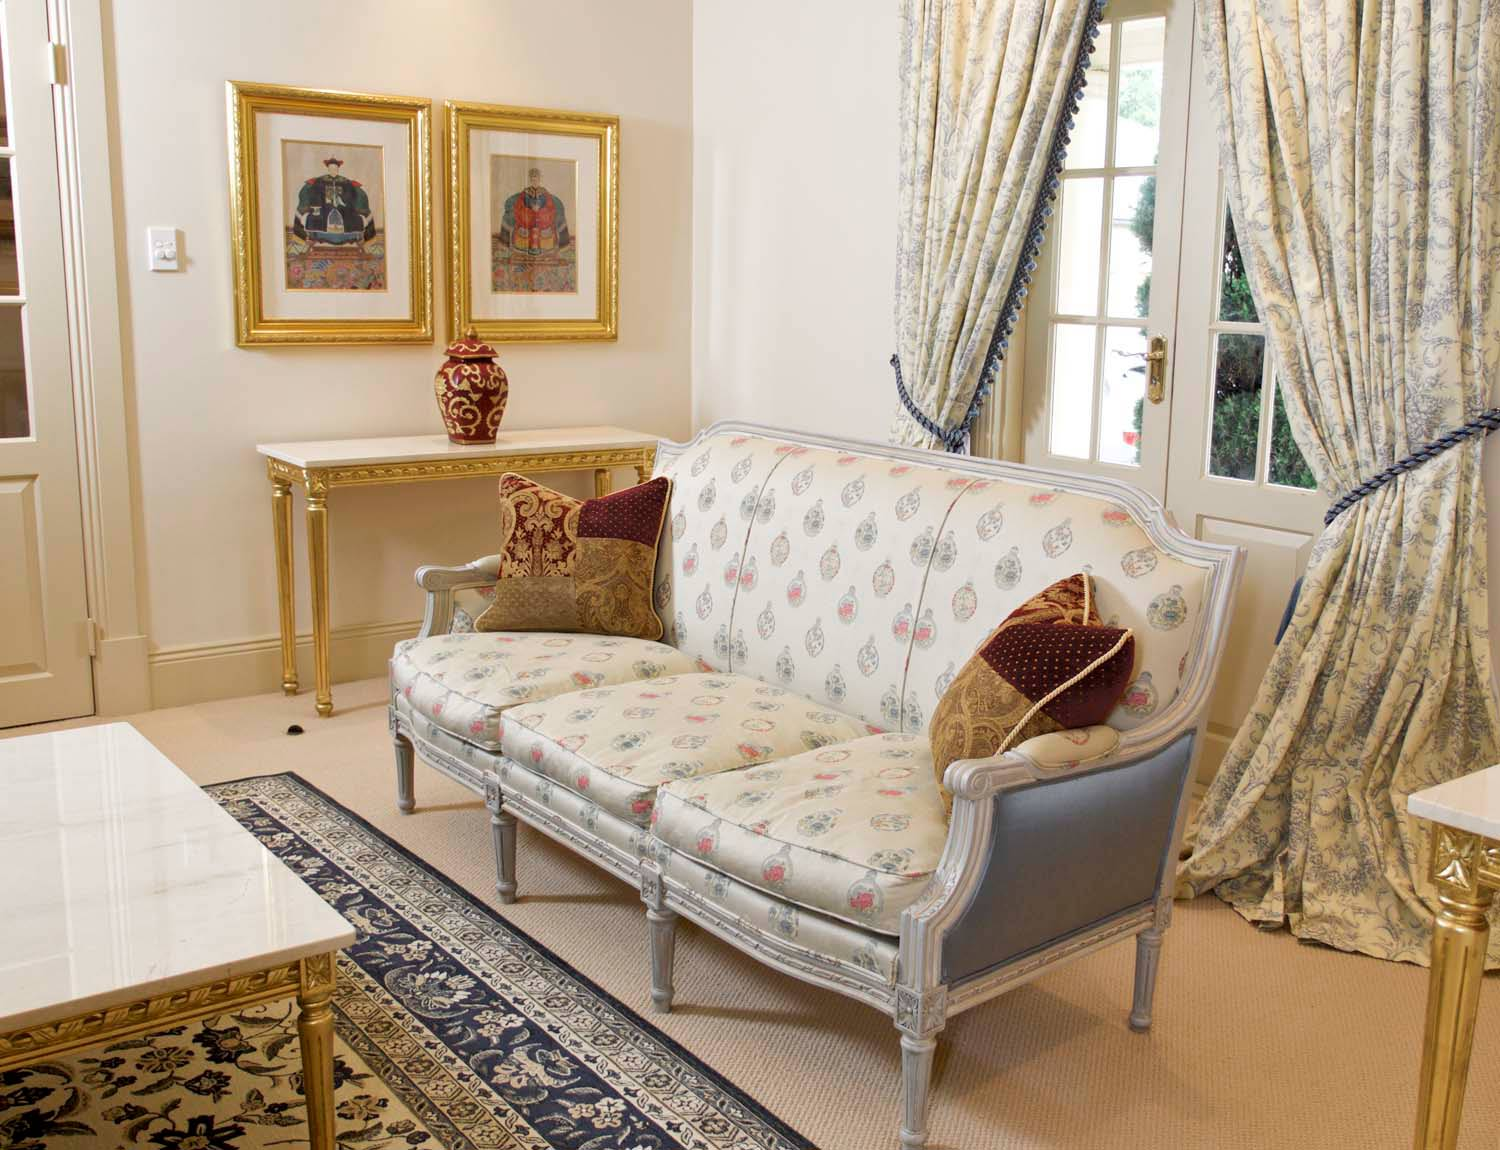 7 Grand country manor in the French style interior